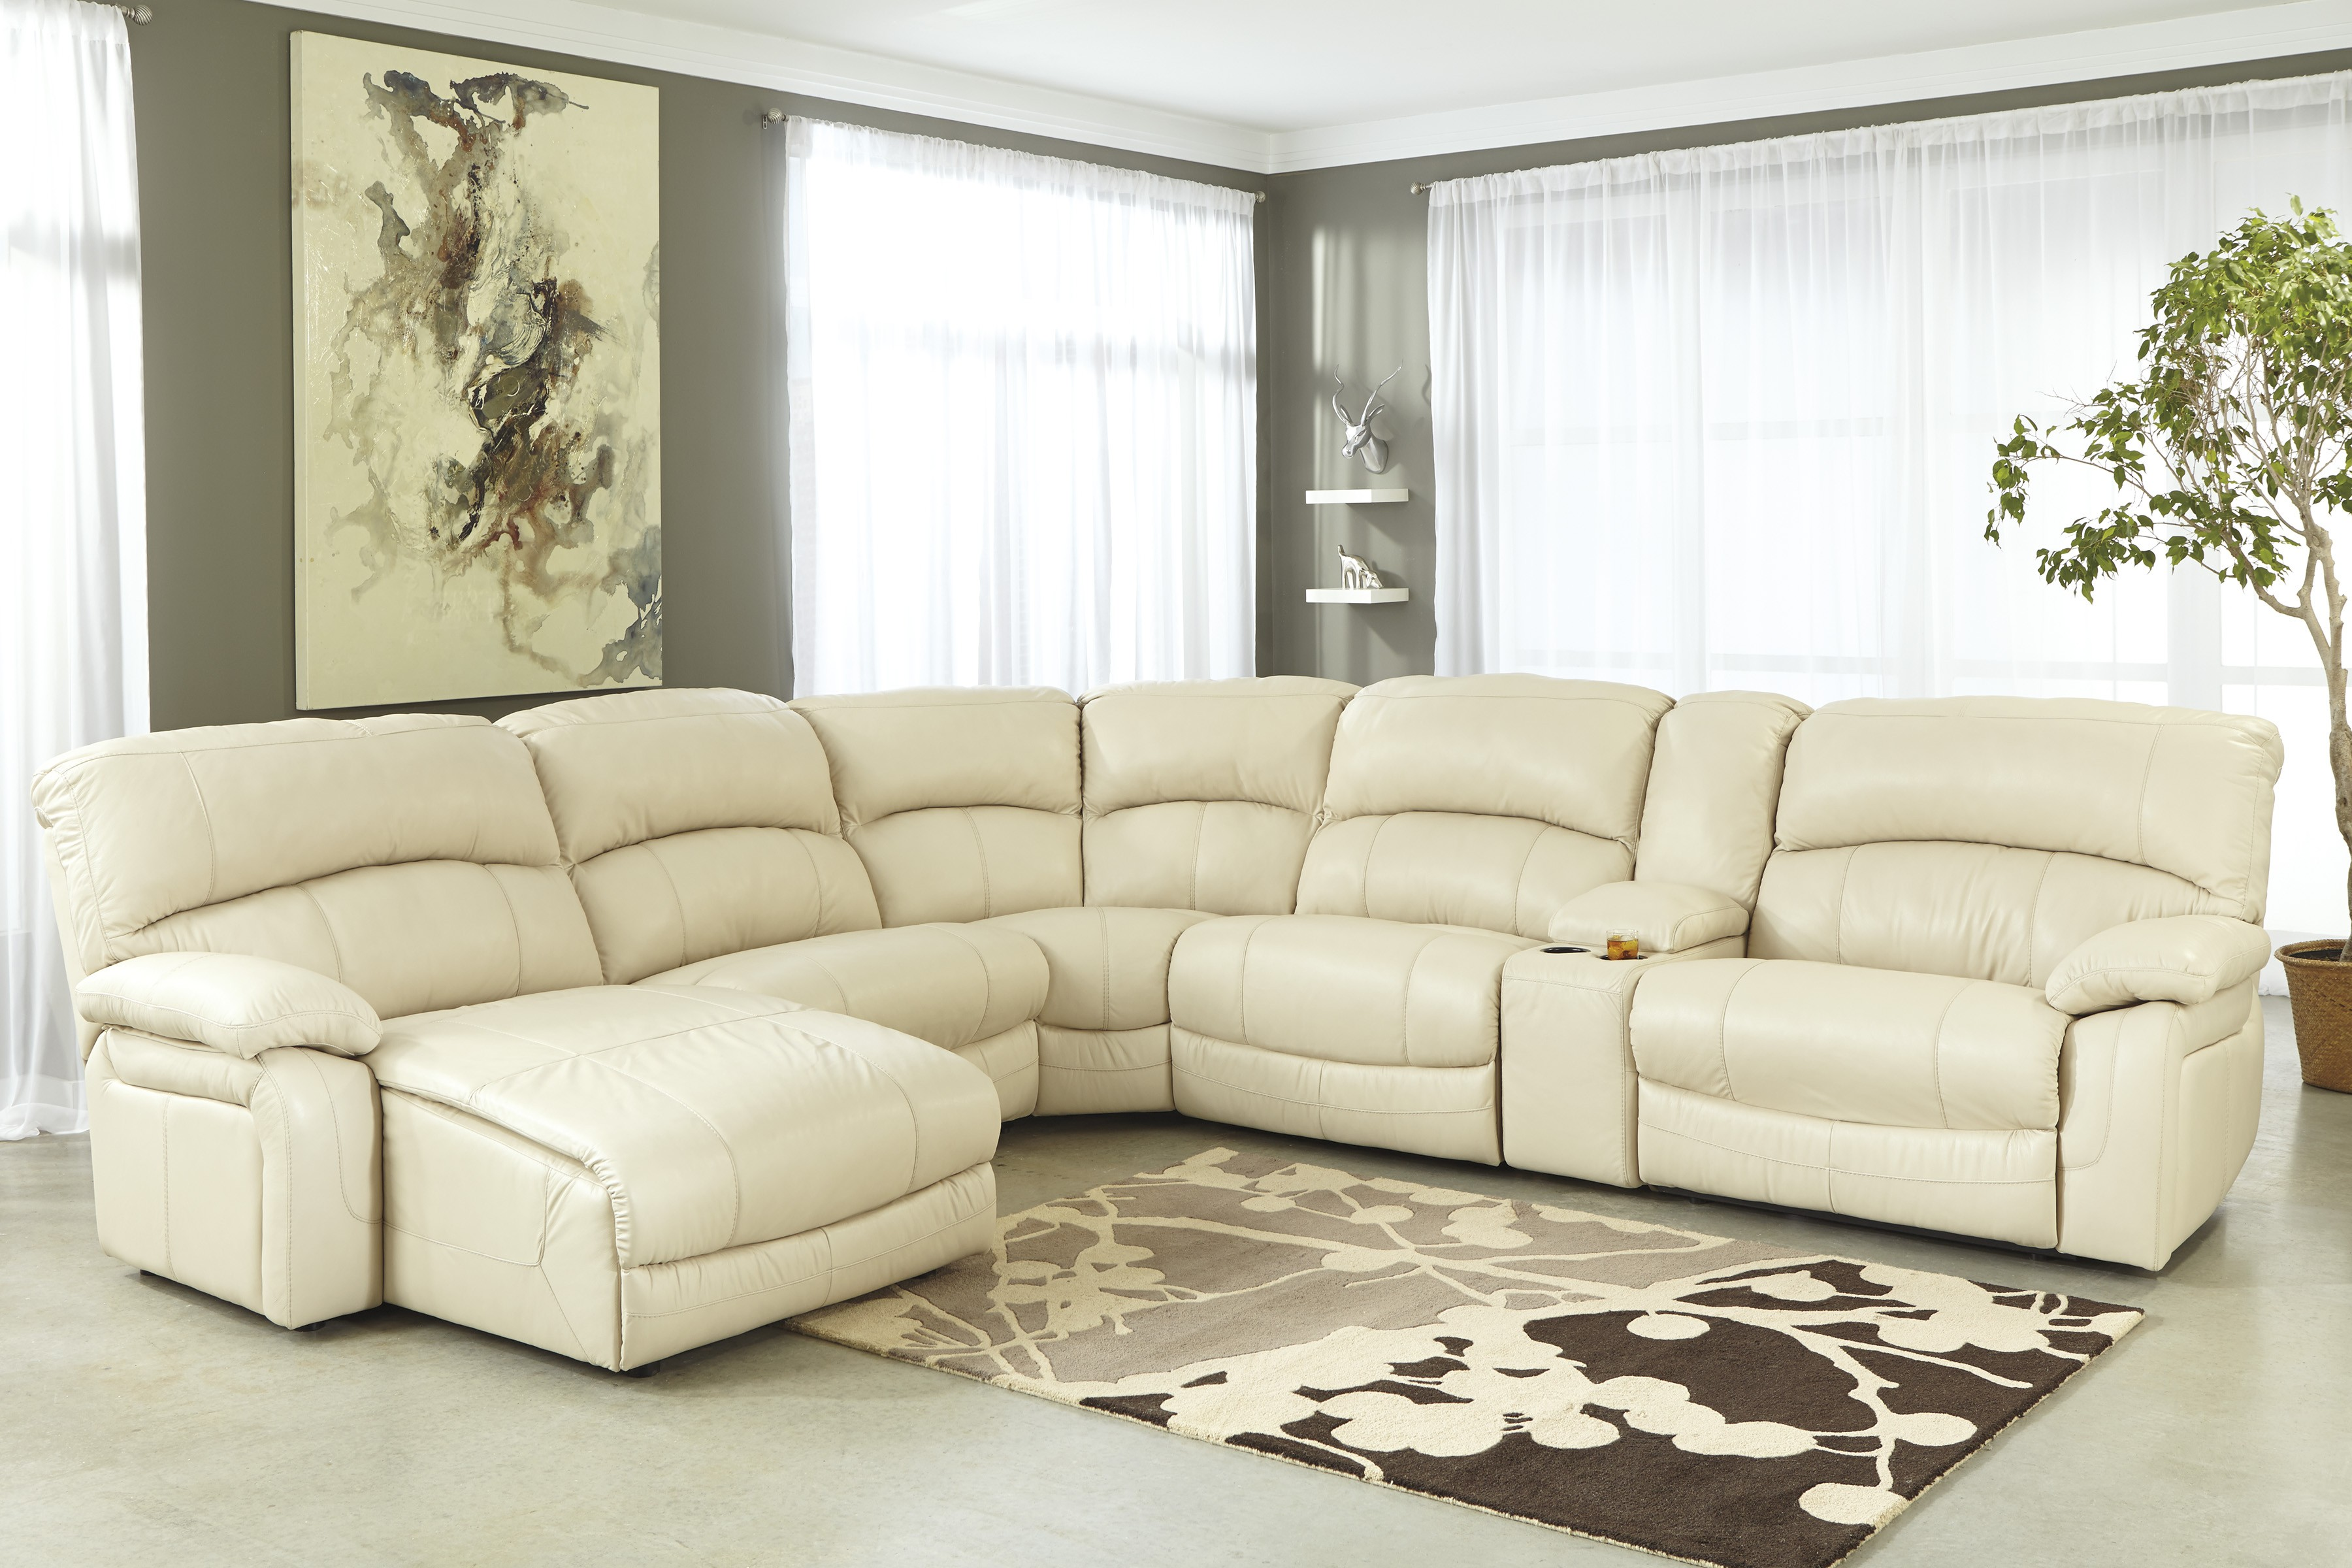 Best Damacio Sofa 24 For Your Modern Sofa Inspiration with Damacio Sofa